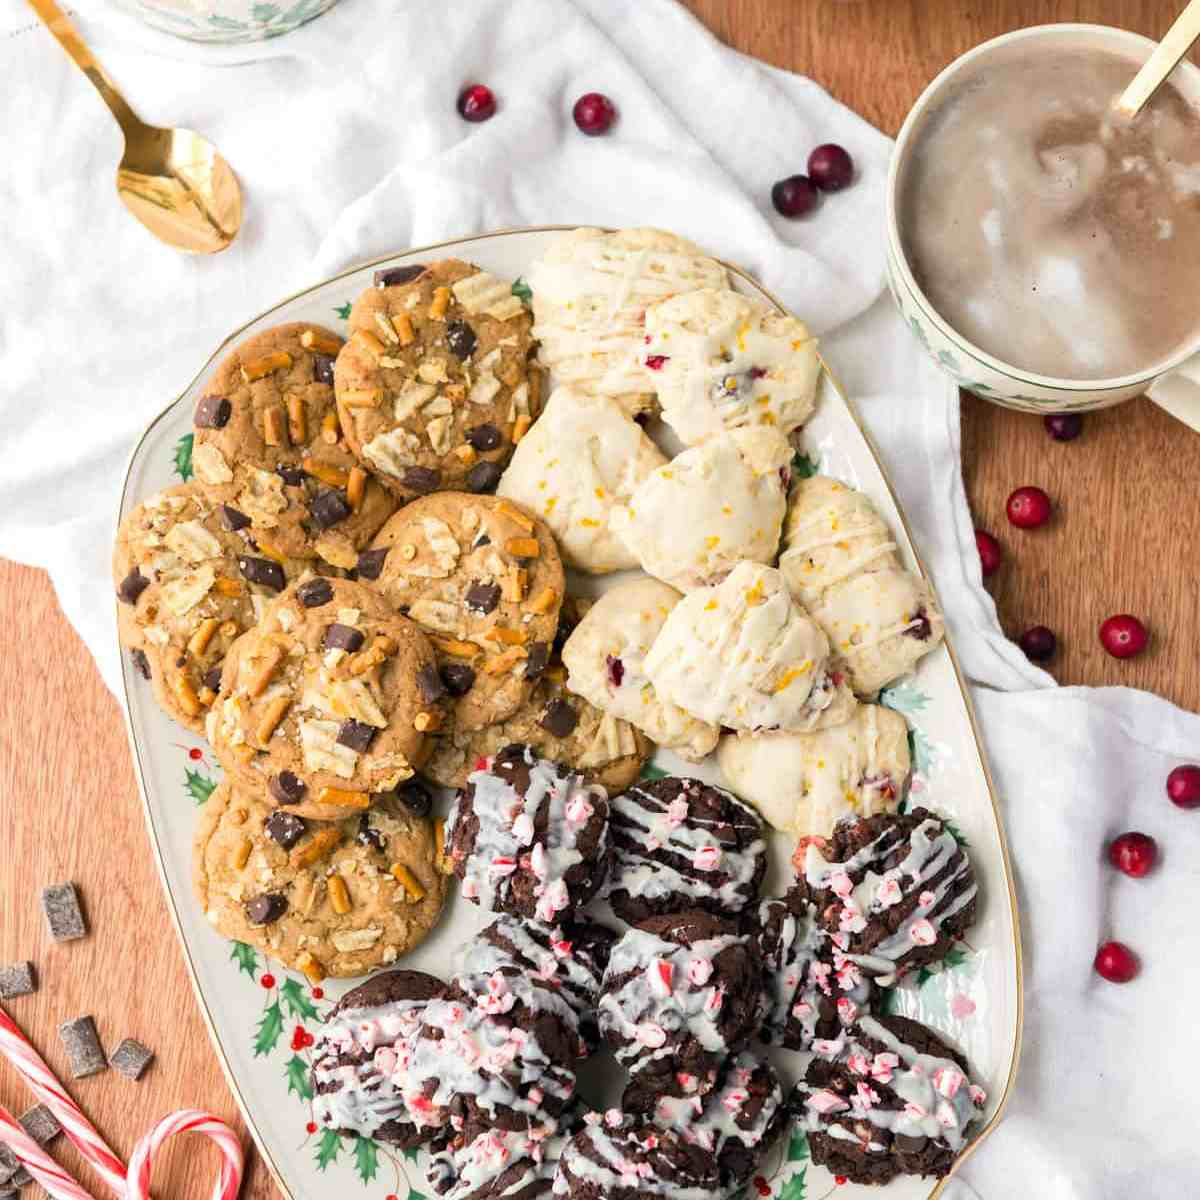 Double Chocolate Peppermint Cookies - Rich treats filled with chunks of peppermint and drizzled with vegan white chocolate. Served on a beautiful Lenox platter with hot cocoa! #nutfree #lenoxusa #spon